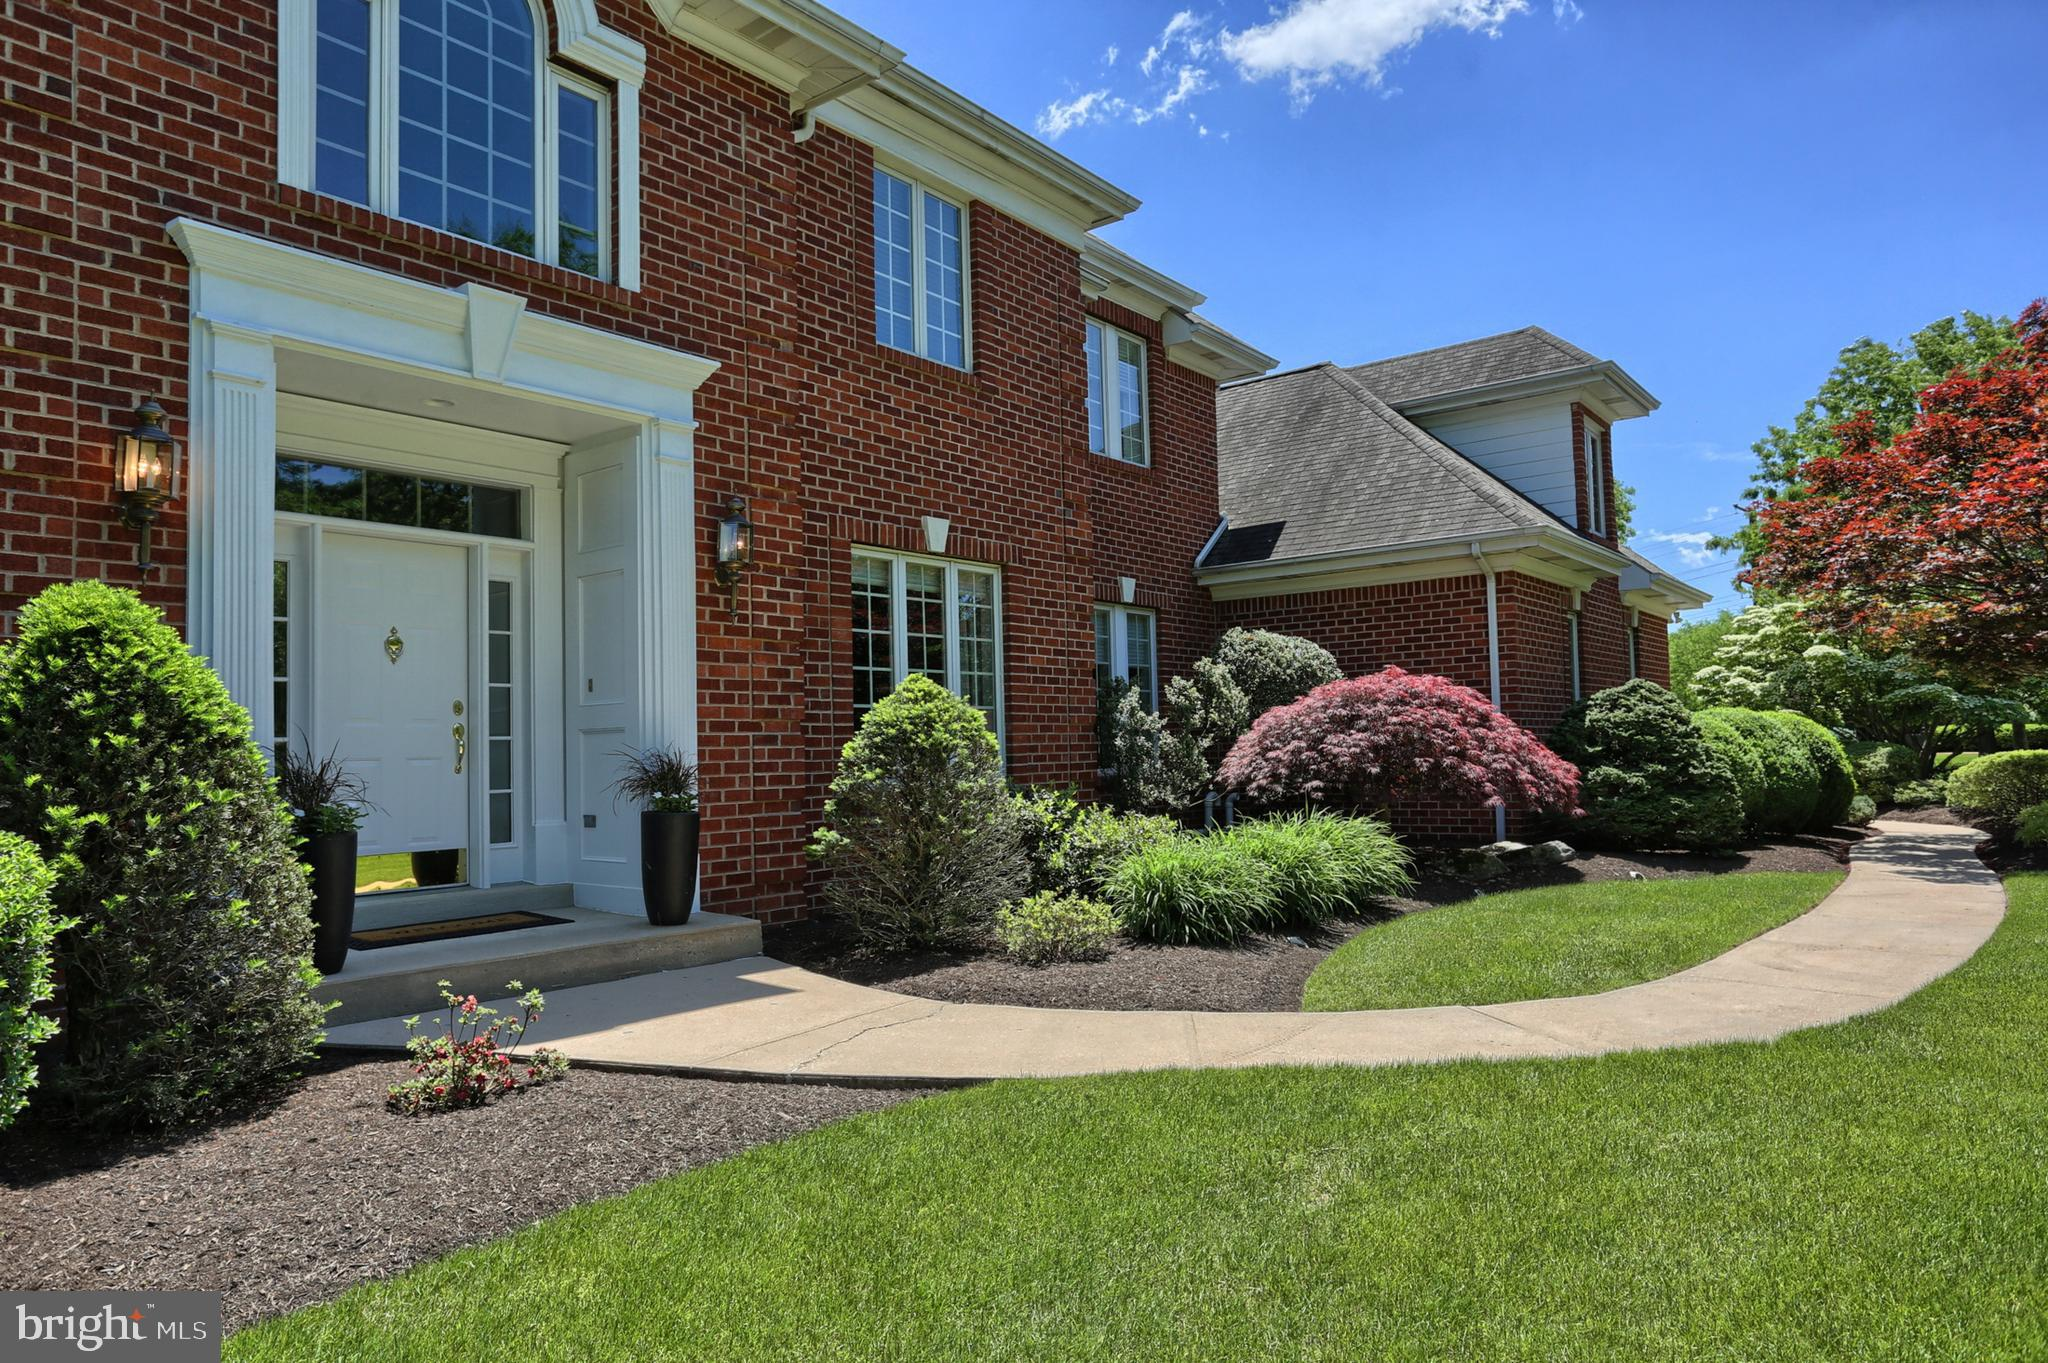 1222 QUAIL HOLLOW ROAD, HUMMELSTOWN, PA 17036